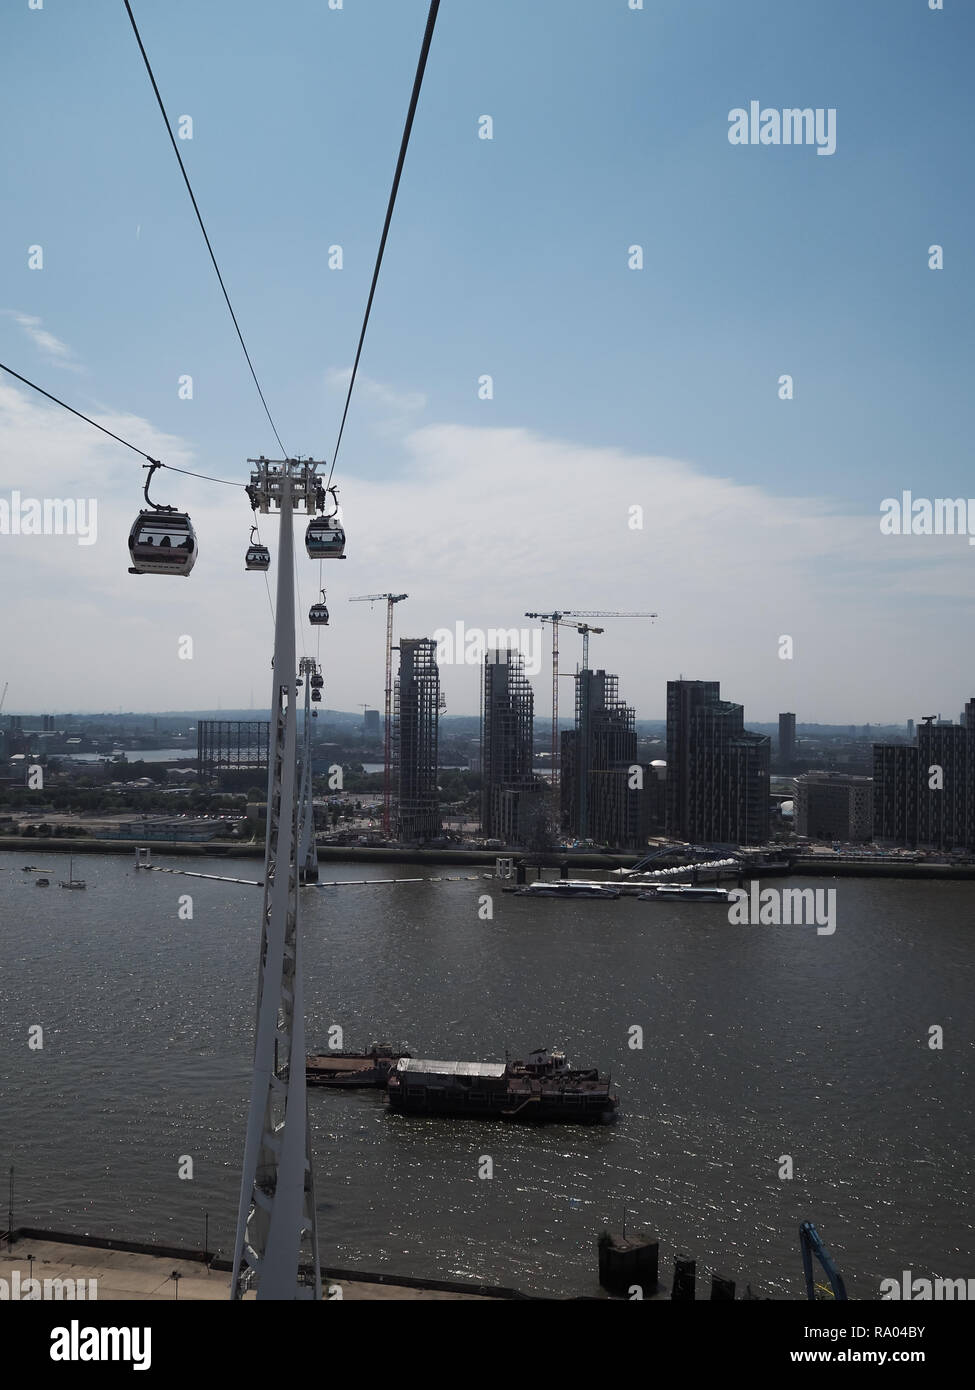 Aerial view of East London from cable car - Stock Image